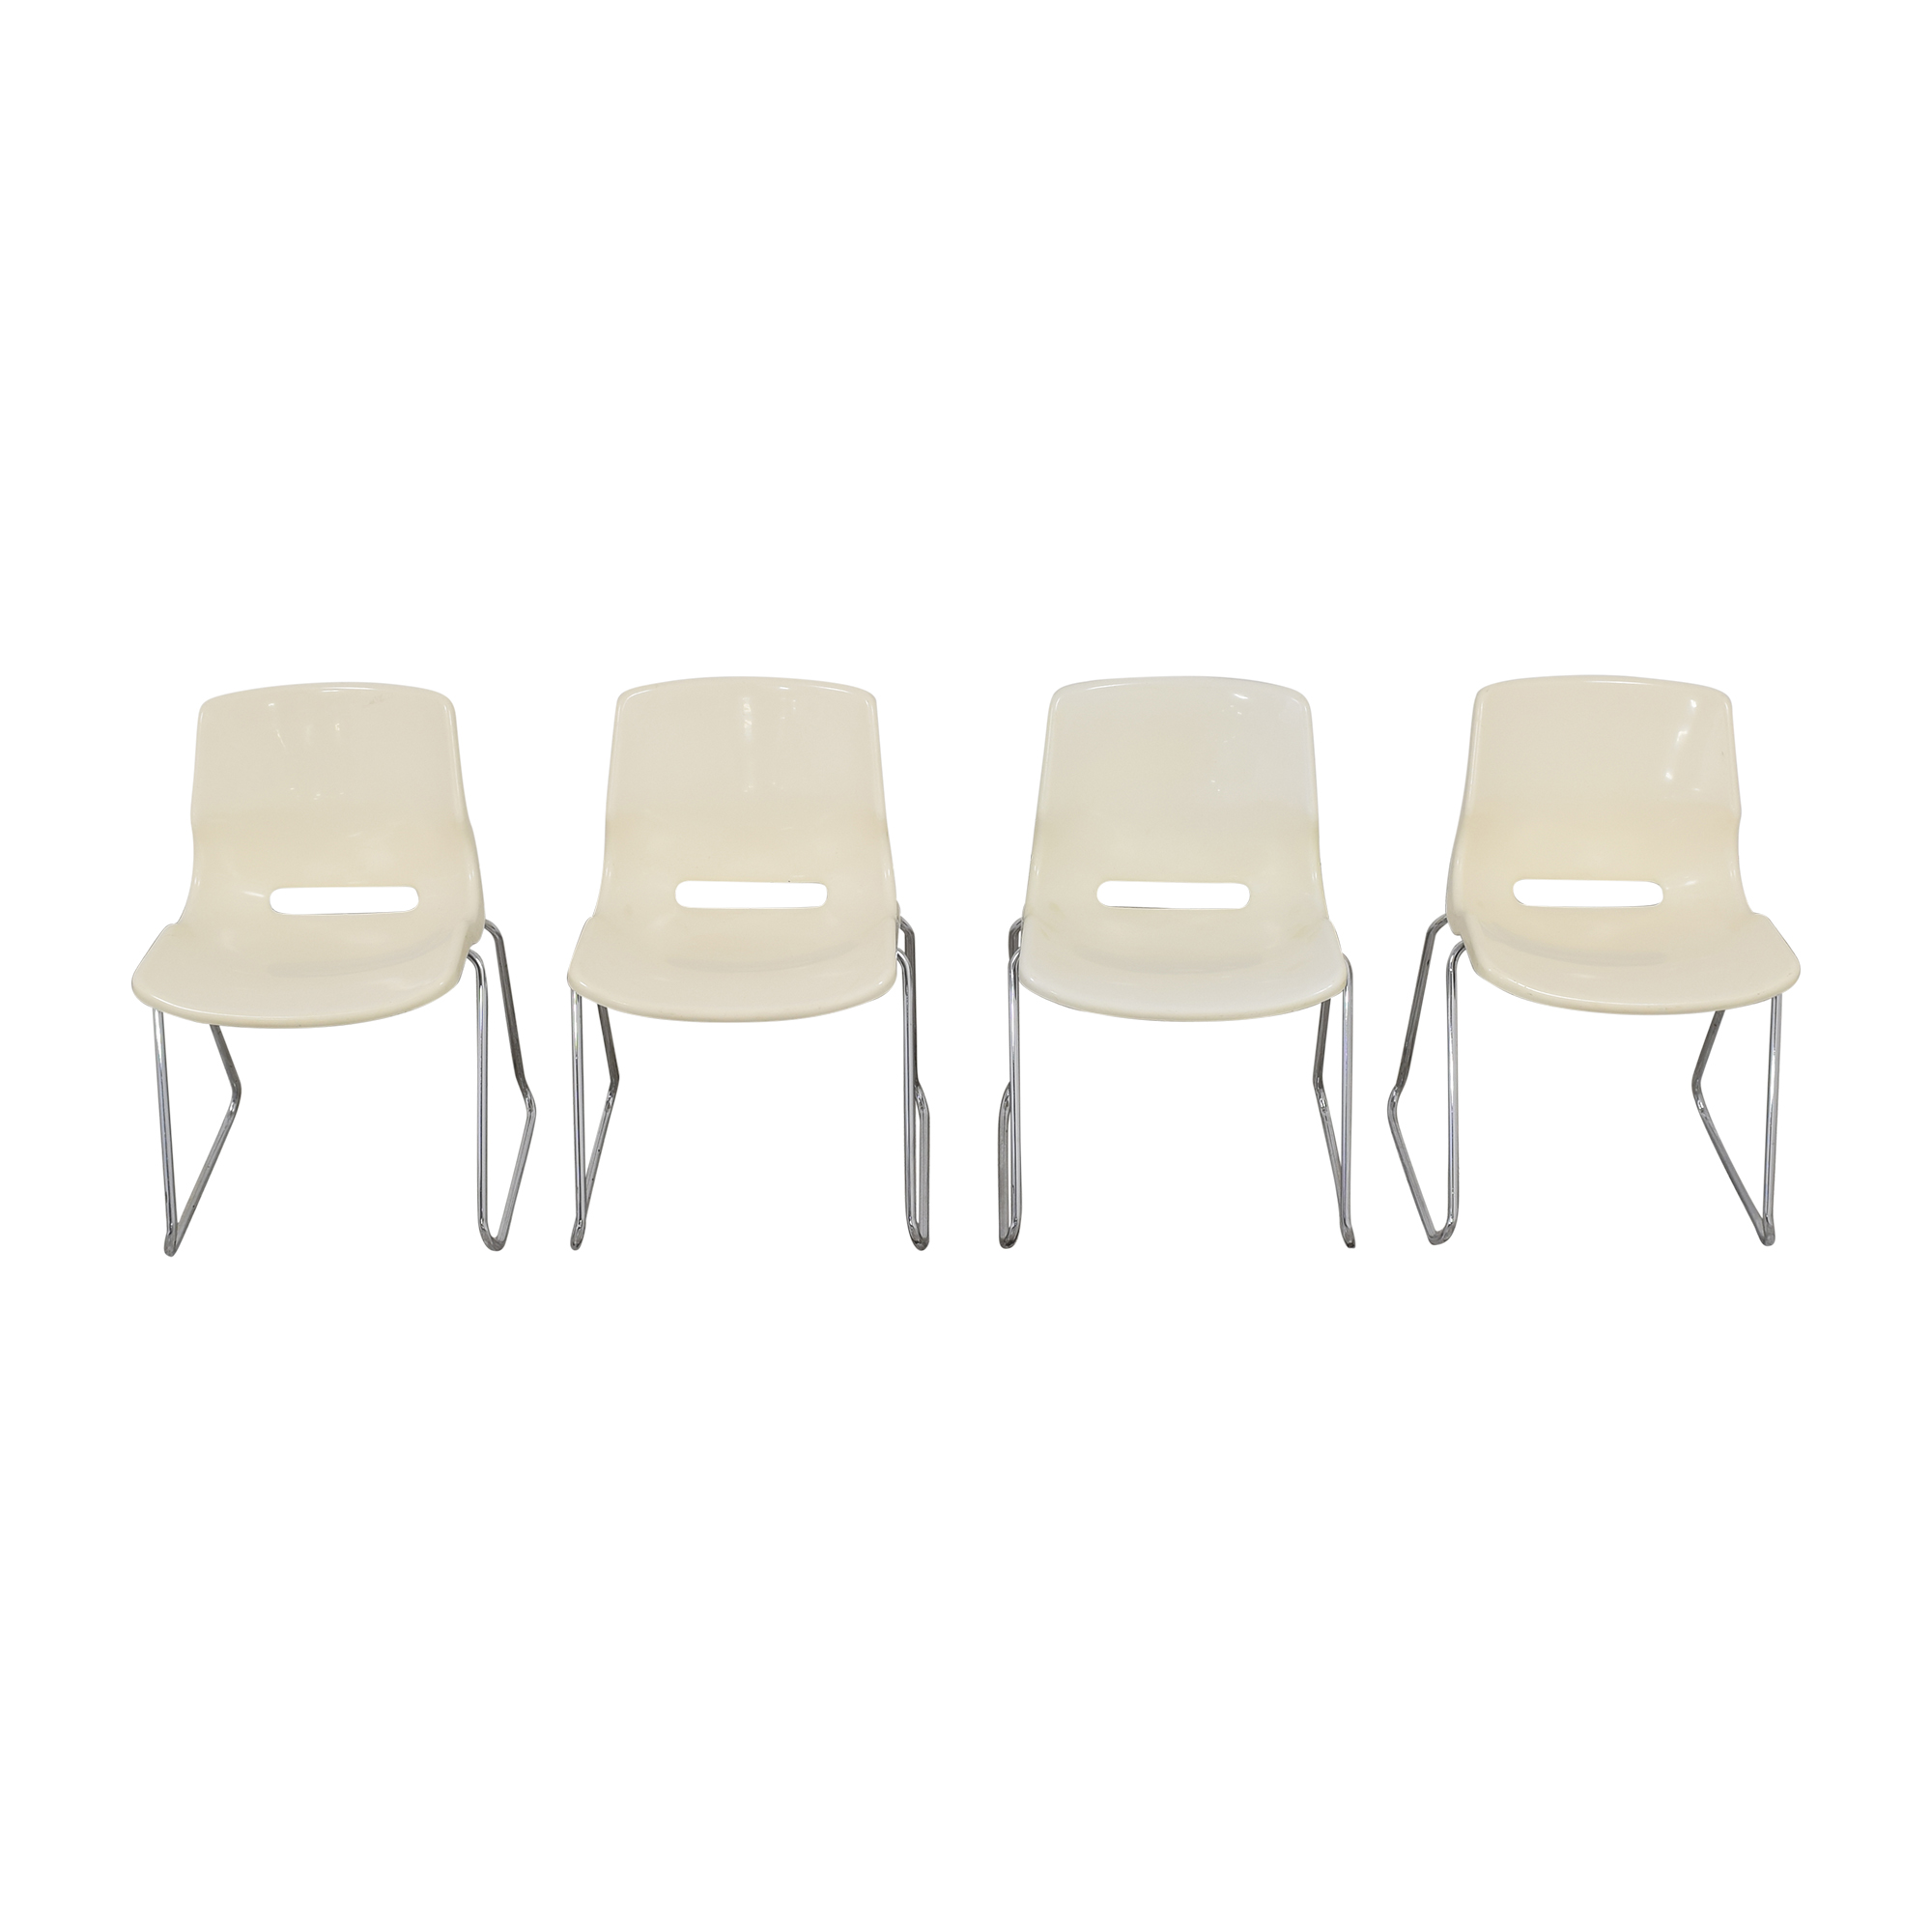 Overman by Svante Schoblom Swedish Stacking Dining Chairs / Chairs